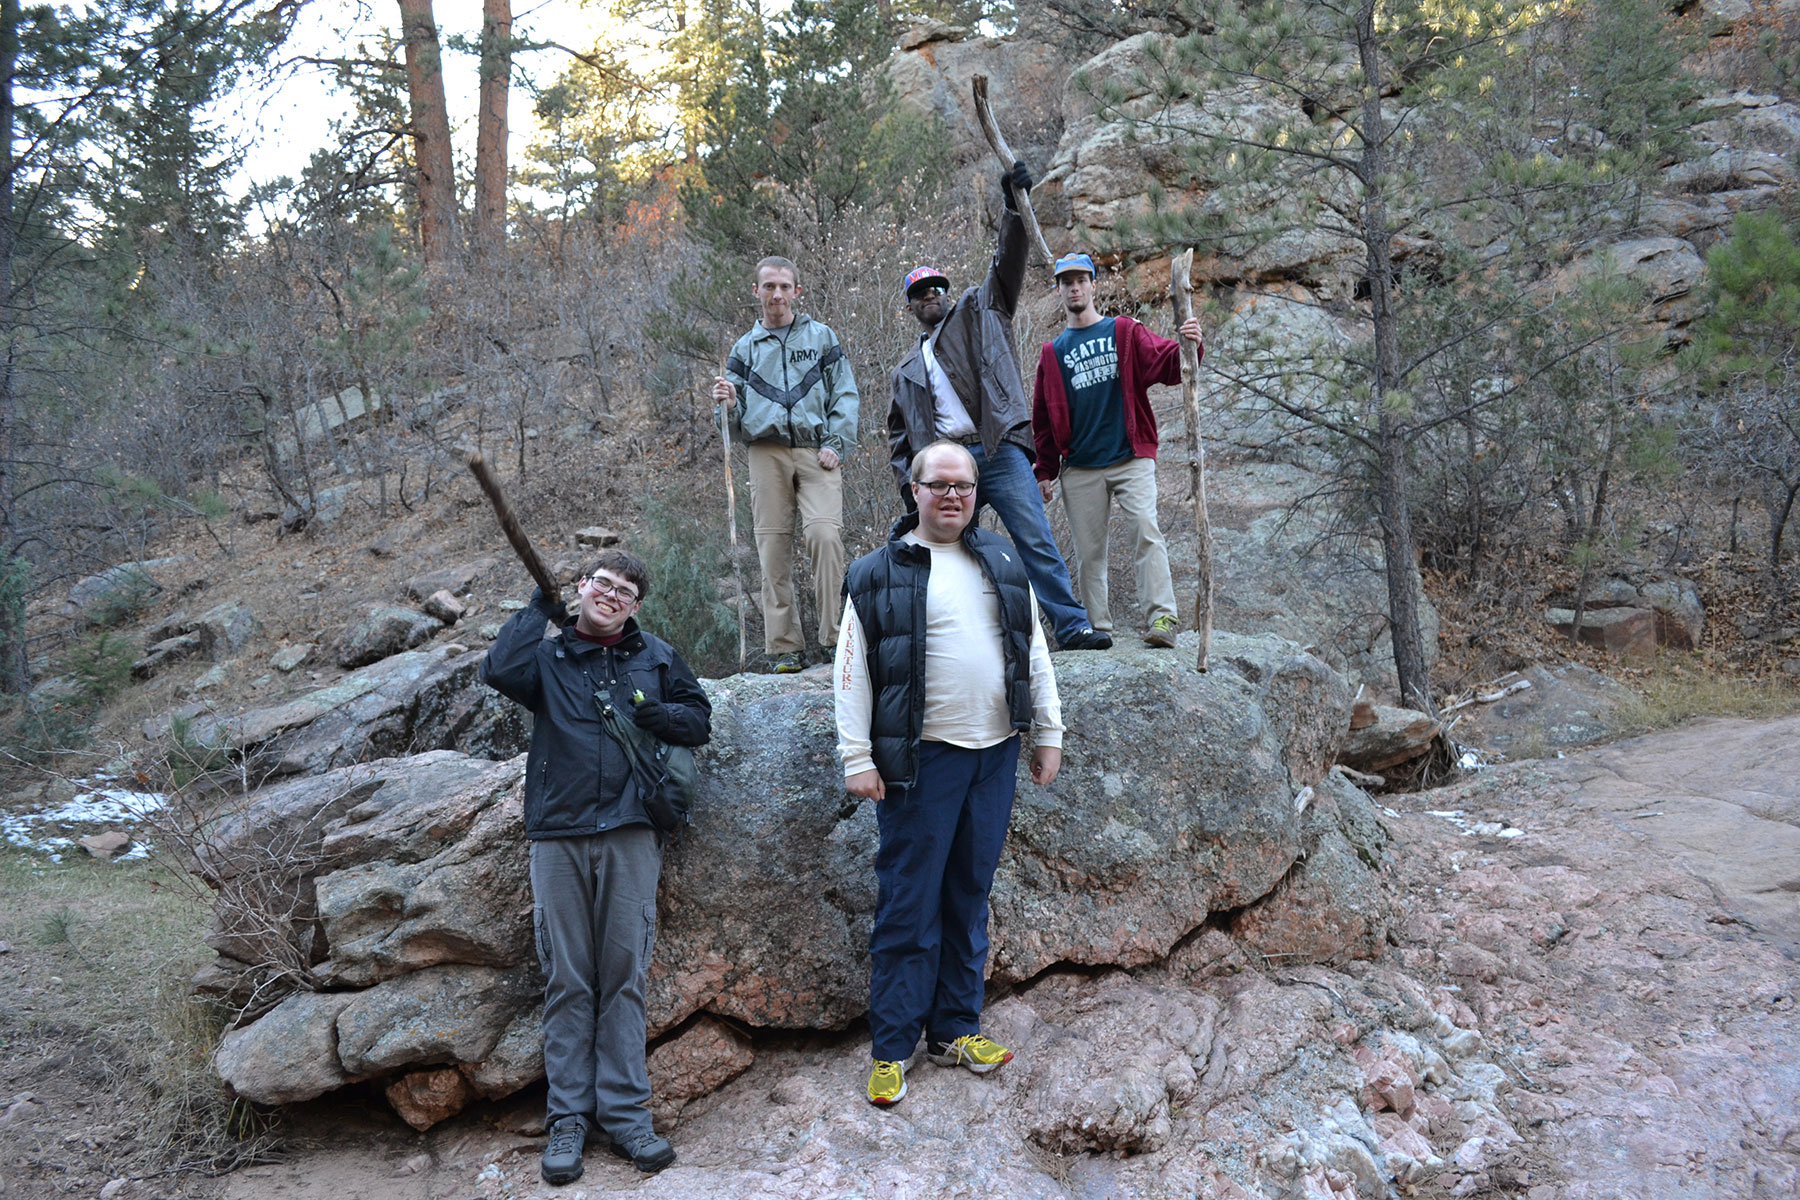 HighPointe Exceptional Expeditions Explores the South Side of Pike's Peak